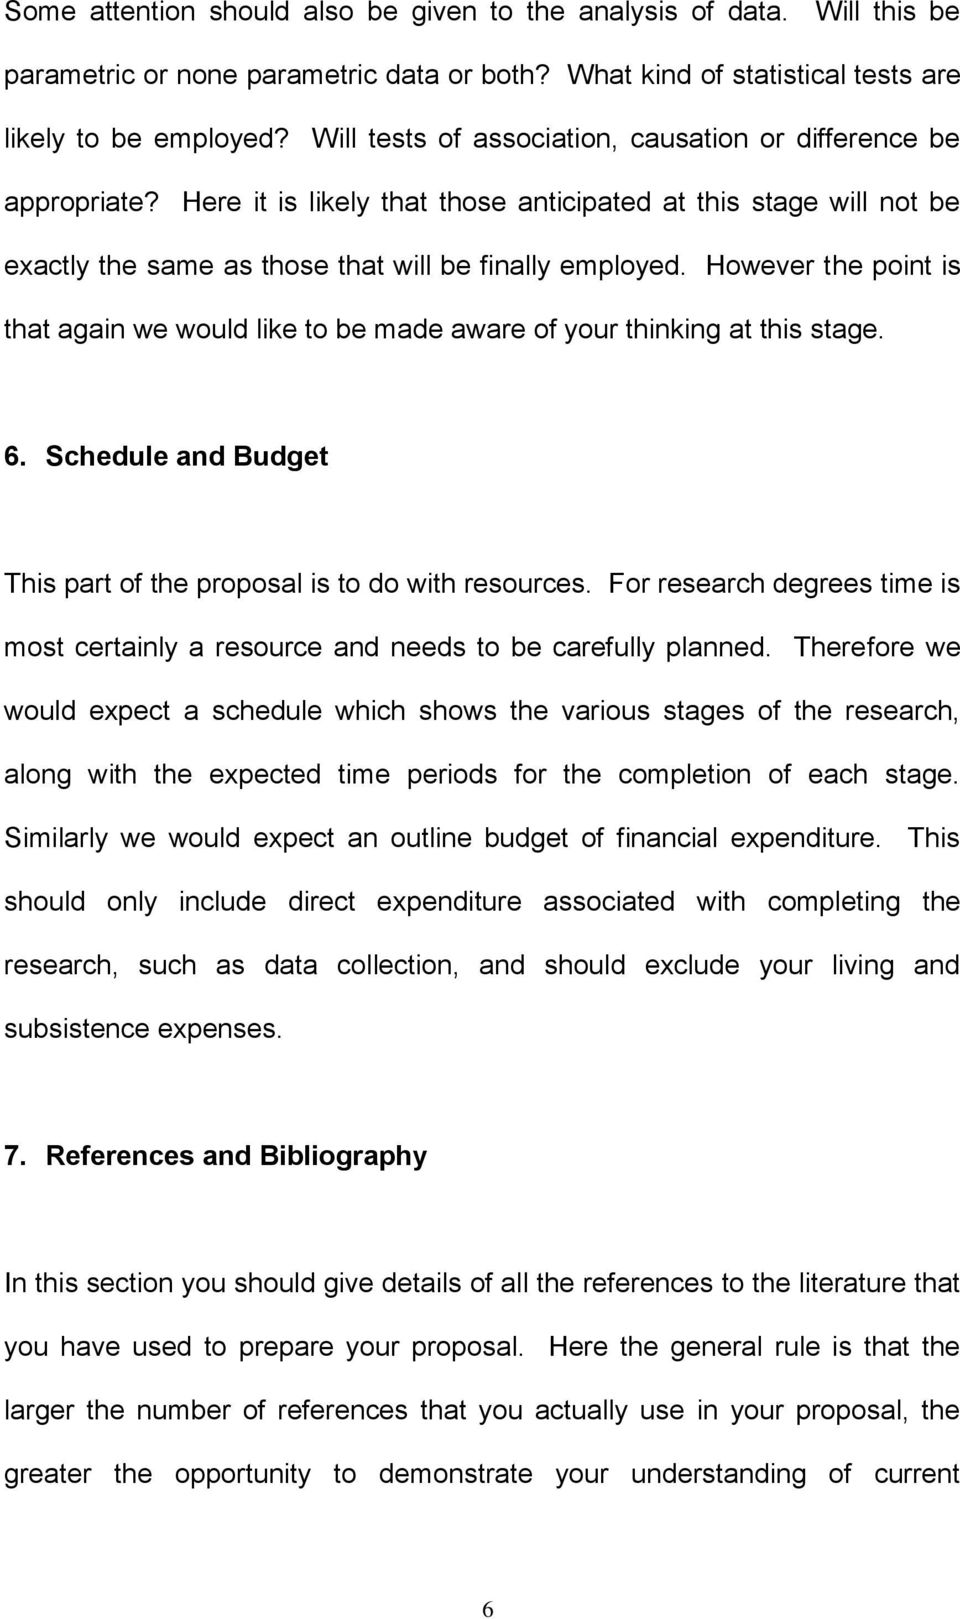 However the point is that again we would like to be made aware of your thinking at this stage. 6. Schedule and Budget This part of the proposal is to do with resources.